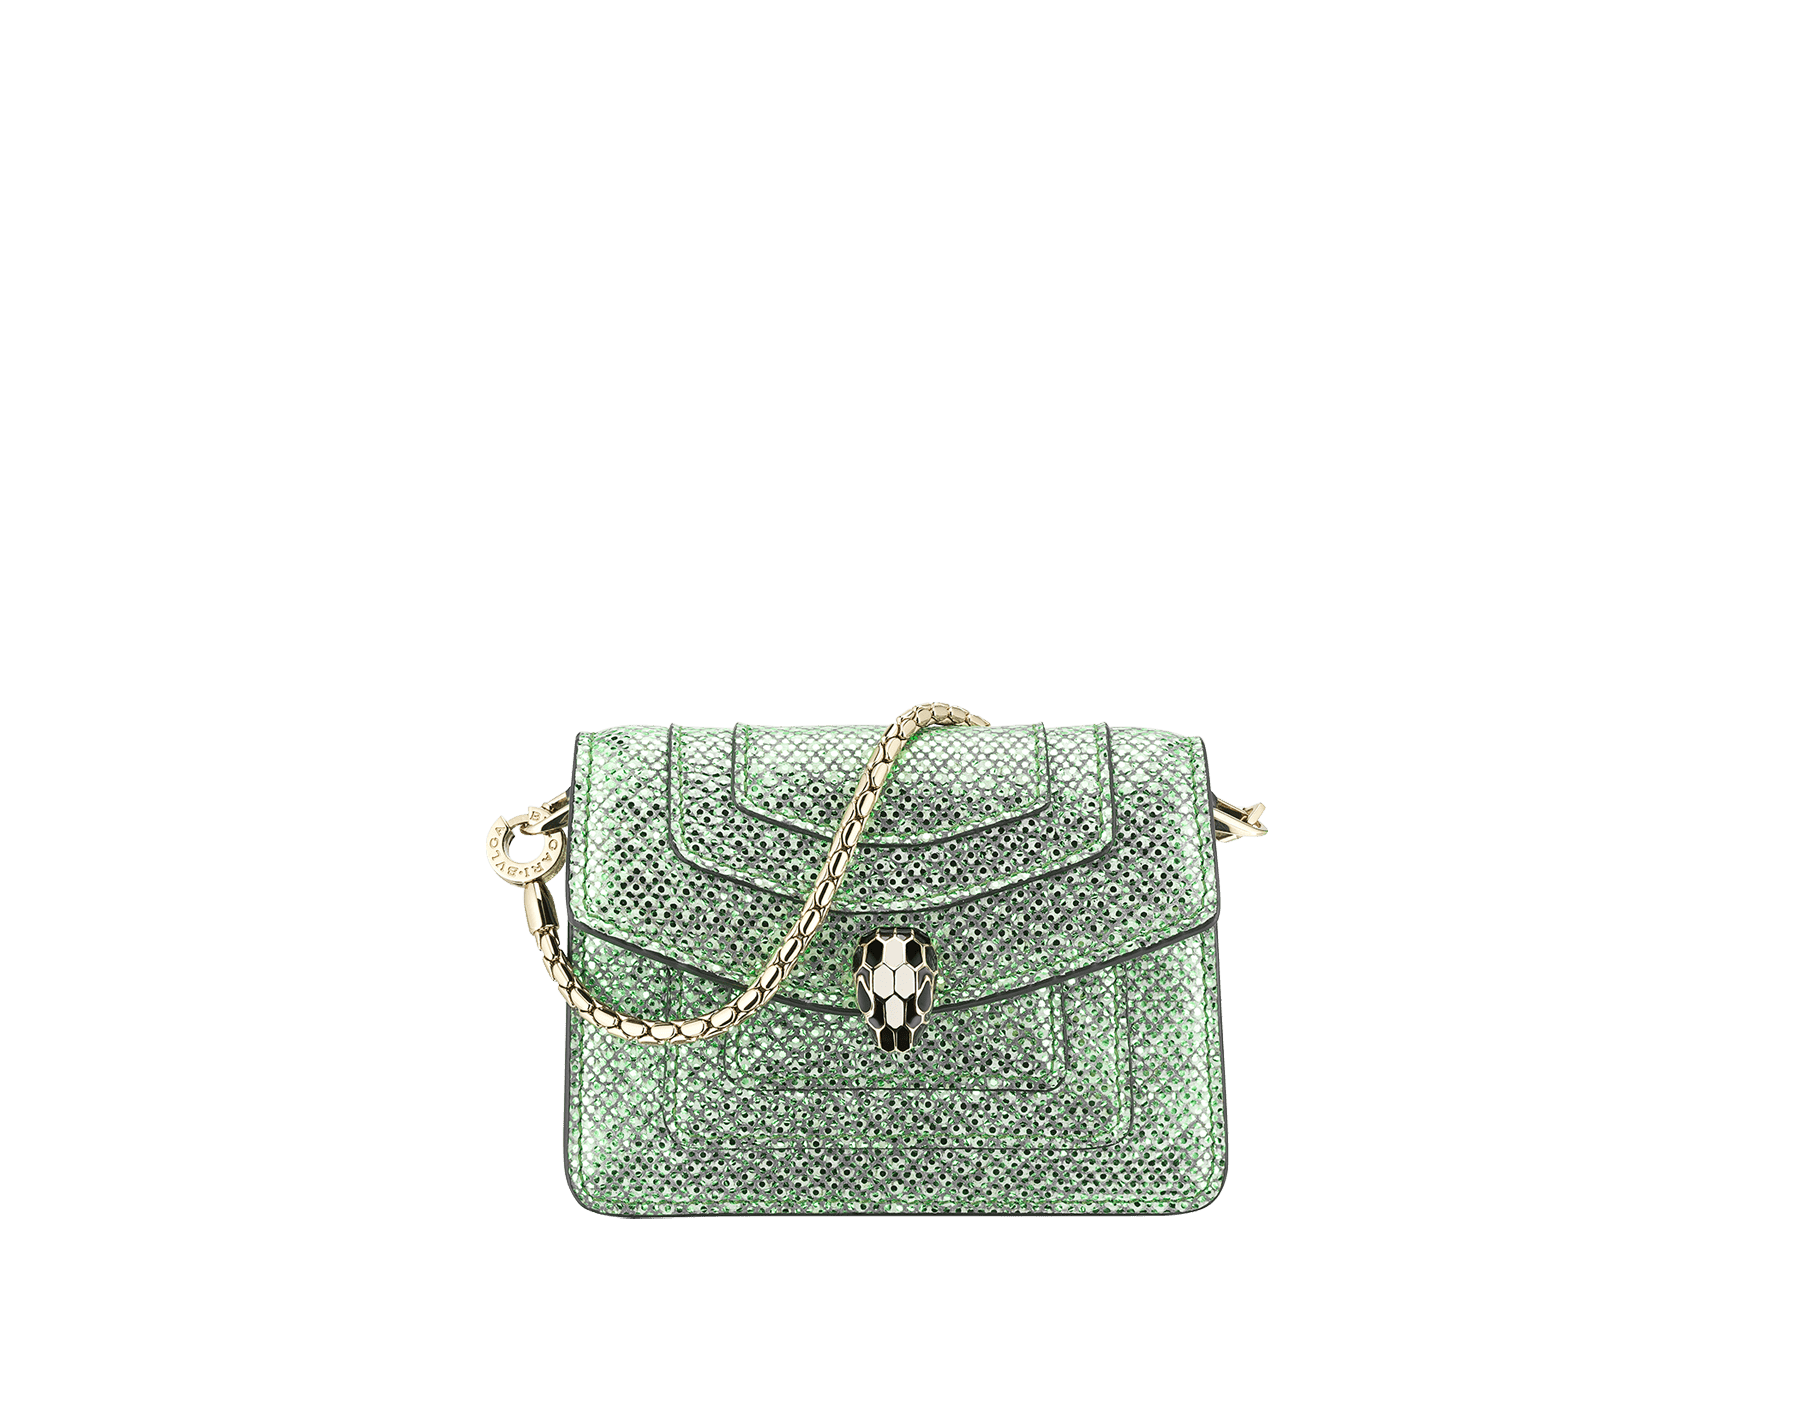 """Serpenti Forever"" miniature bag charm in mint metallic karung skin and black calf leather. Iconic brass light gold plated snakehead stud closure enamelled in black and white and finished with black enamel eyes. SERP-BAG-CHARM-MK image 1"